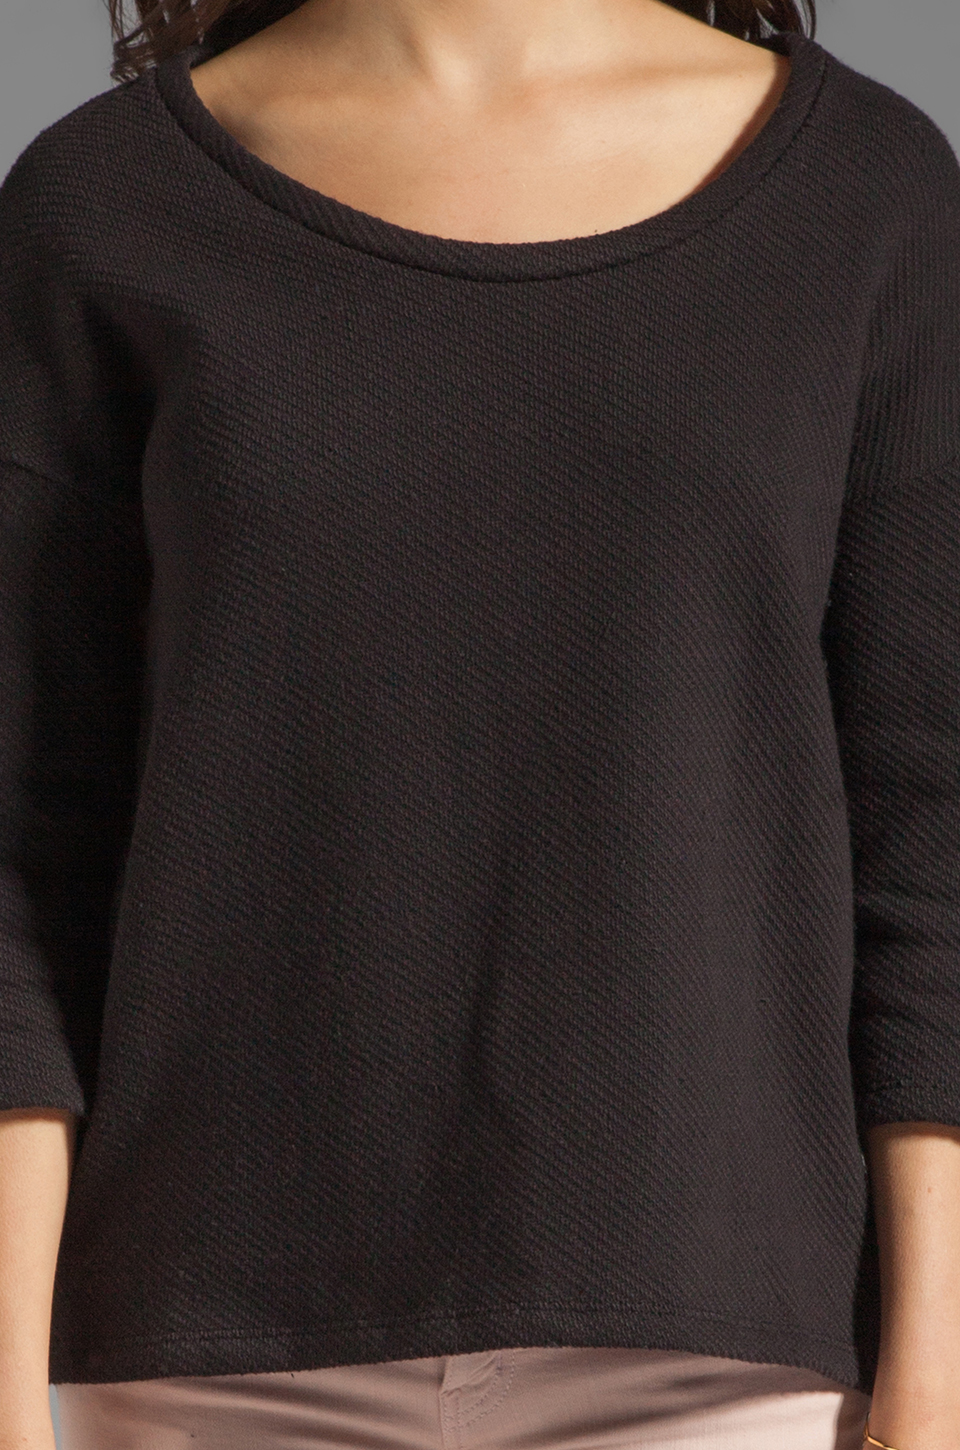 Soft Joie Chante French Terry Sweatshirt in Caviar